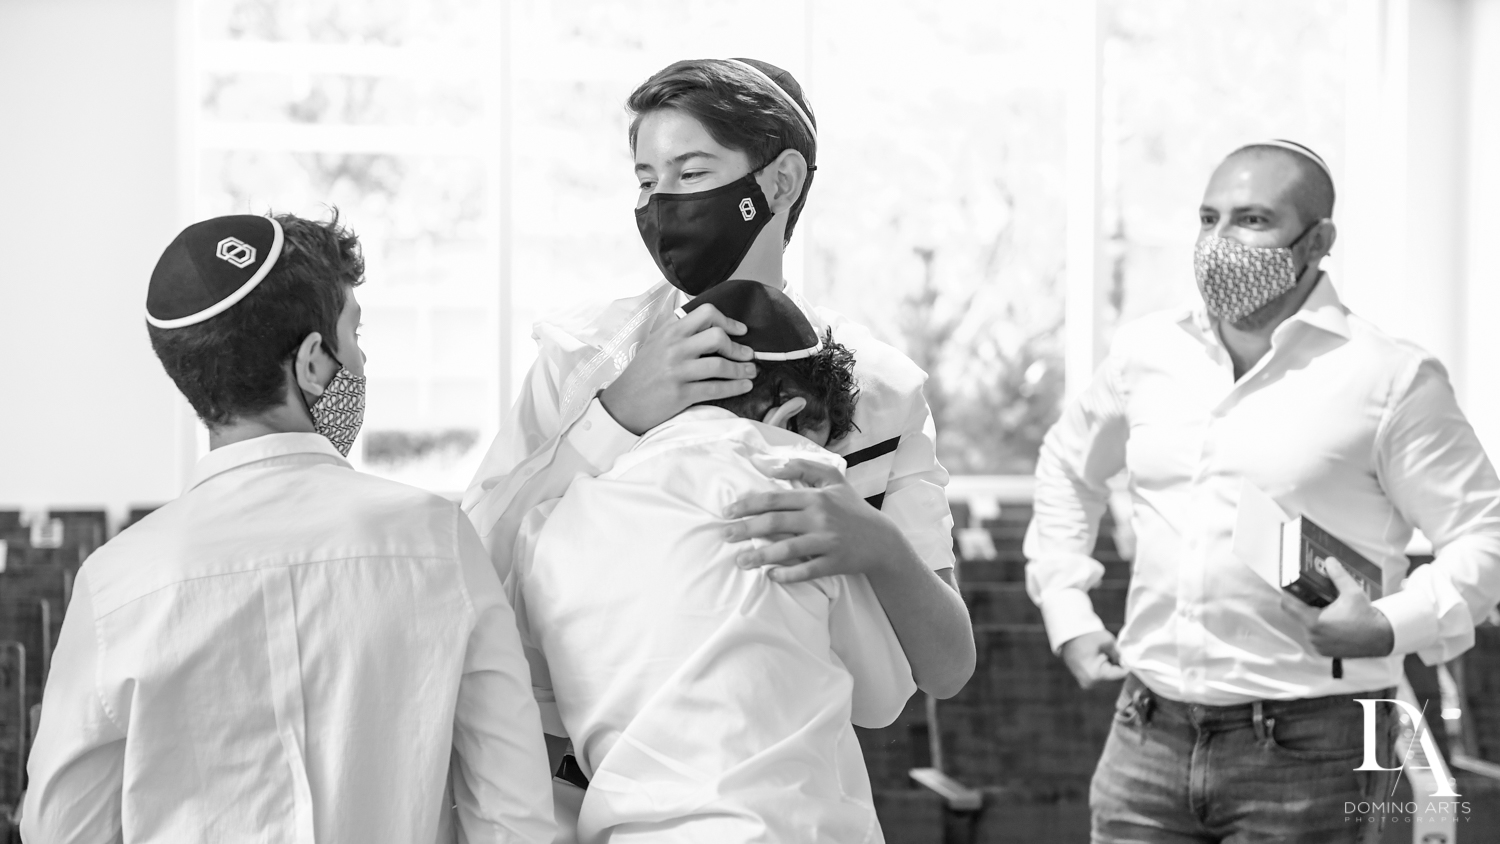 B&W Bar Mitzvah Photography by Domino Arts